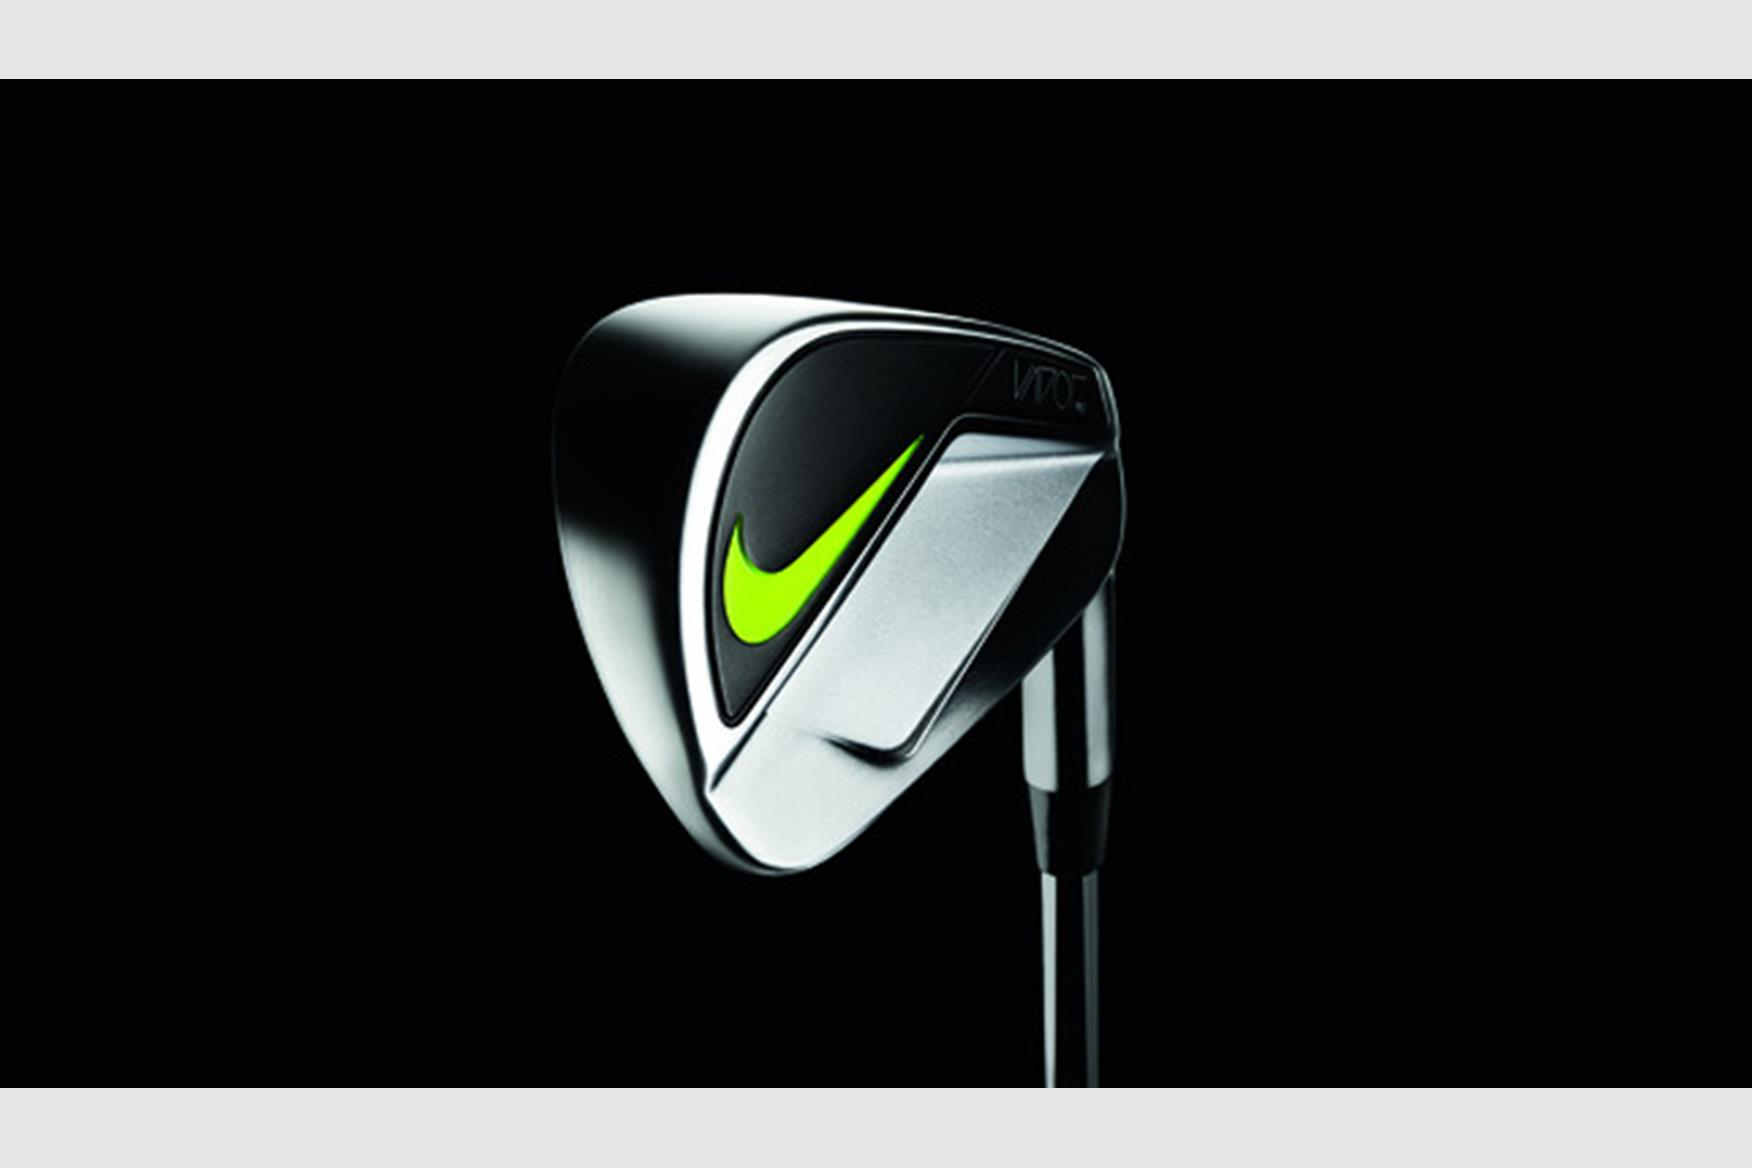 6e5c9377e4a Nike Golf Vapor Pro Irons Review